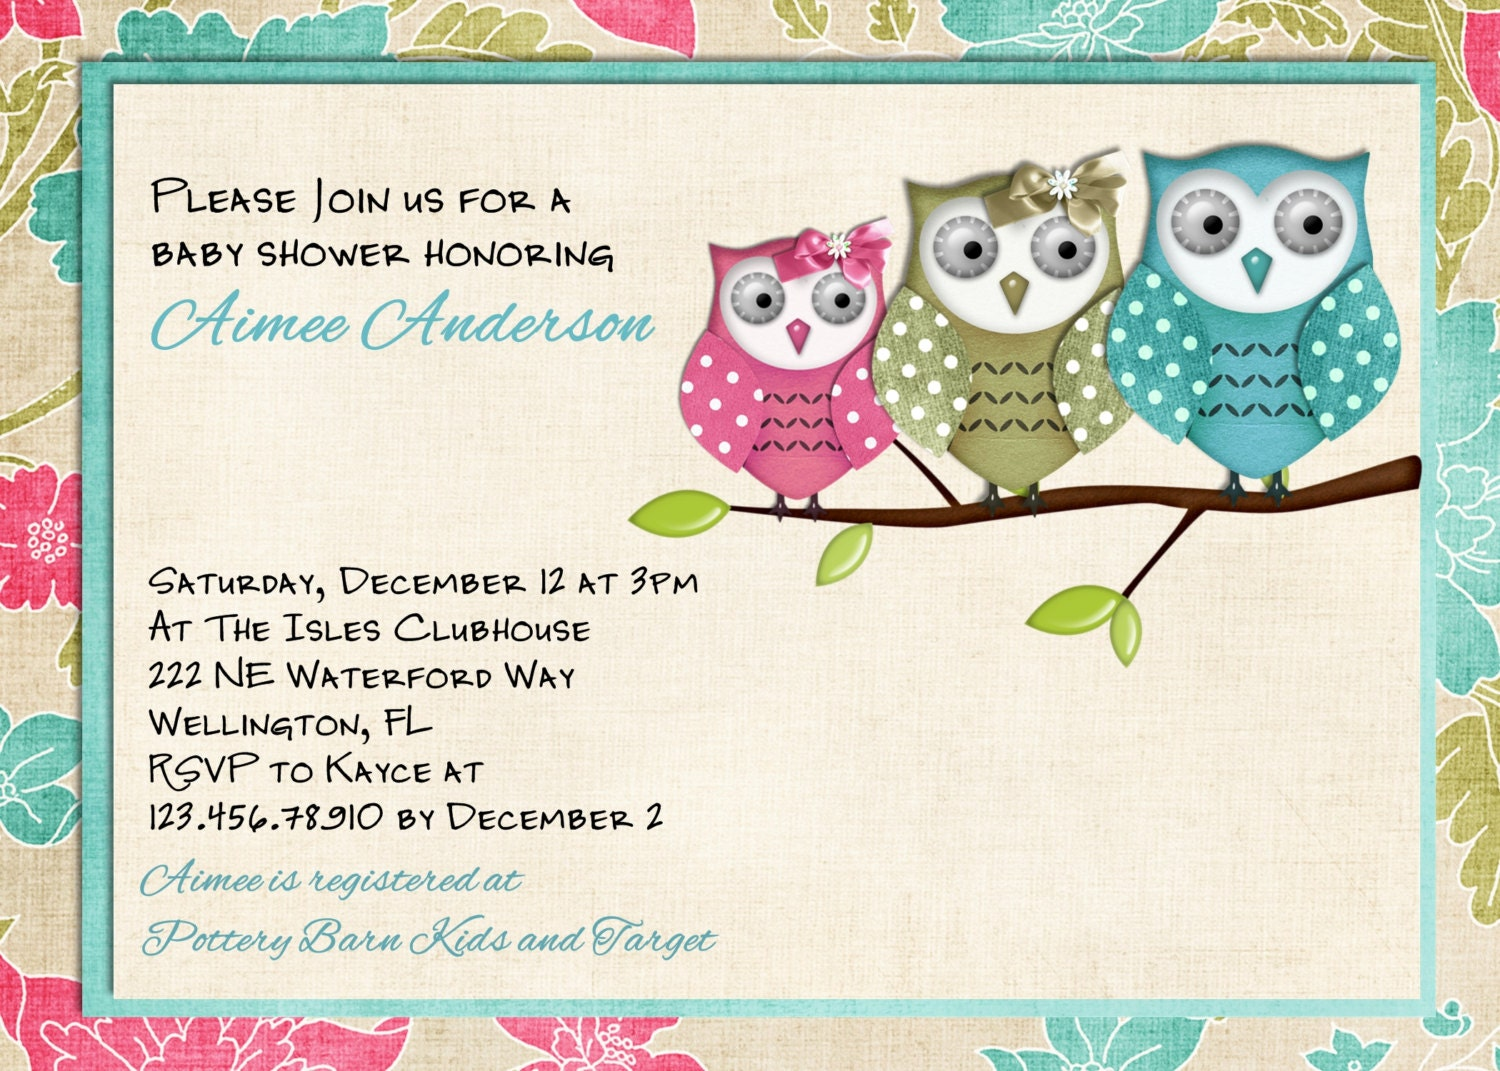 Astounding image for free printable owl baby shower invitations